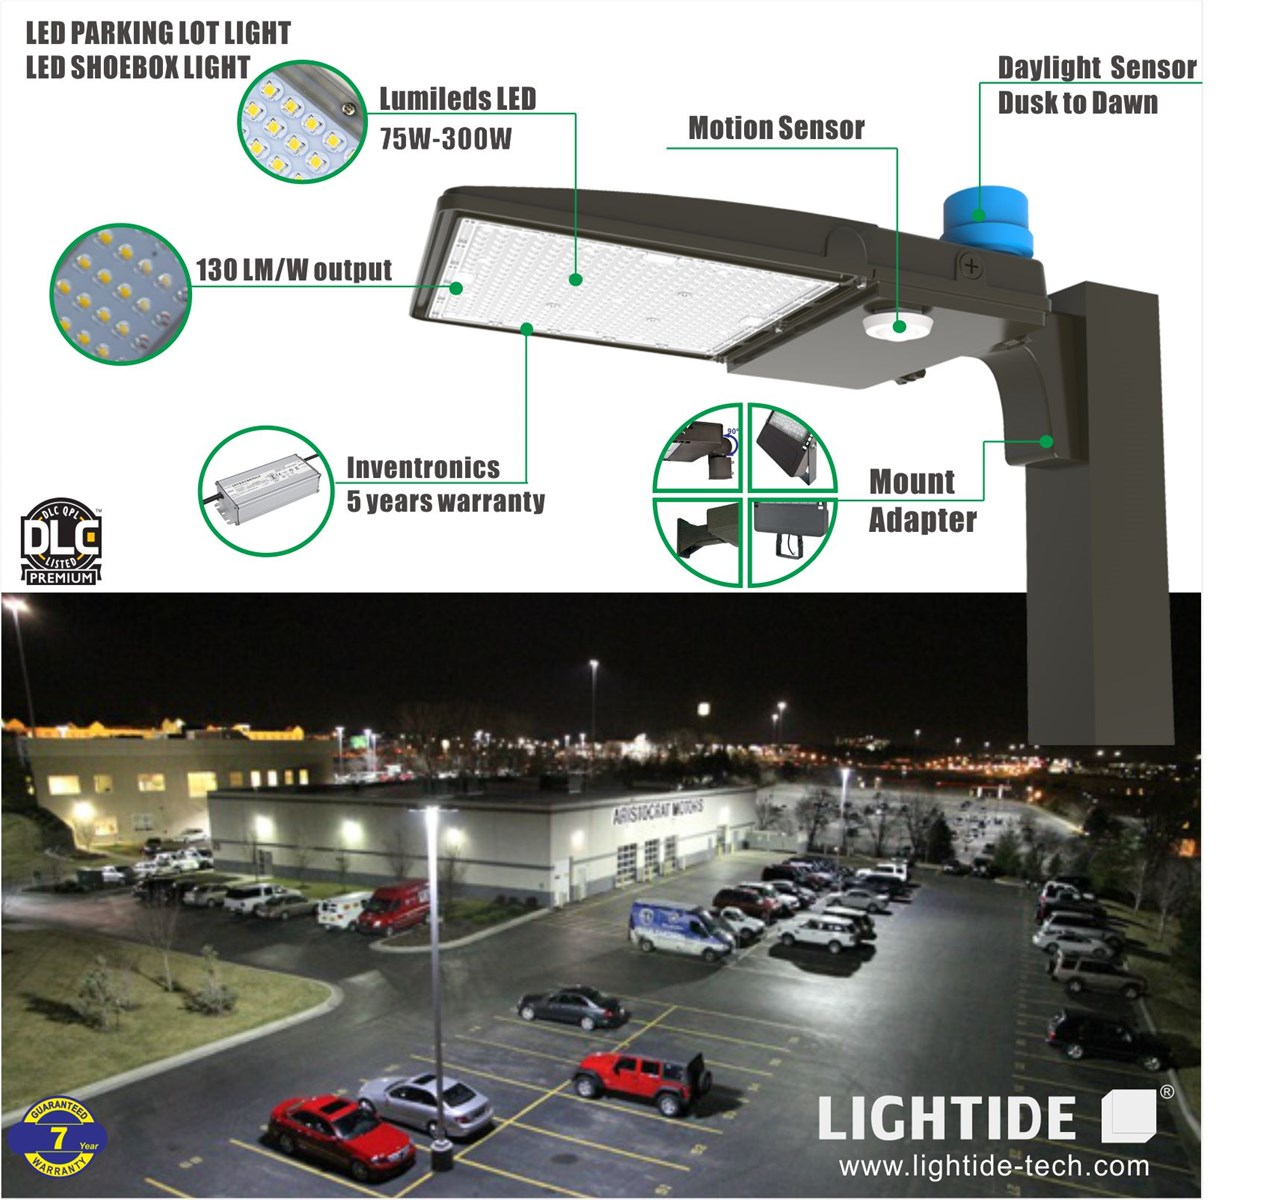 DLC Qualified Dusk to Dawn LED Parking Lot Light Fixtures 150W Lumileds with 5 yrs warranty